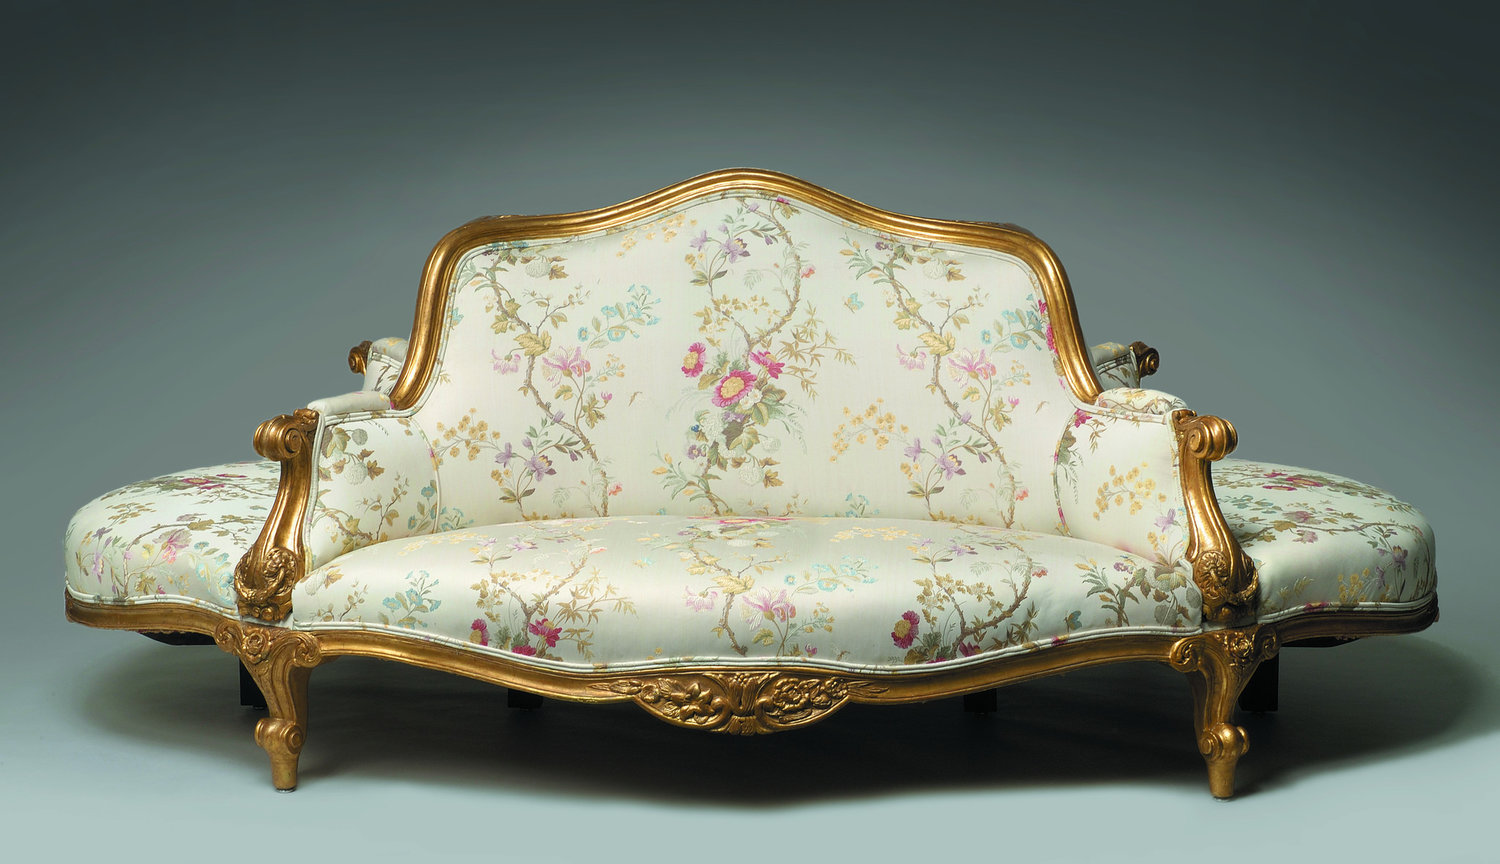 Antique and Fine Furniture — The Conservation Center